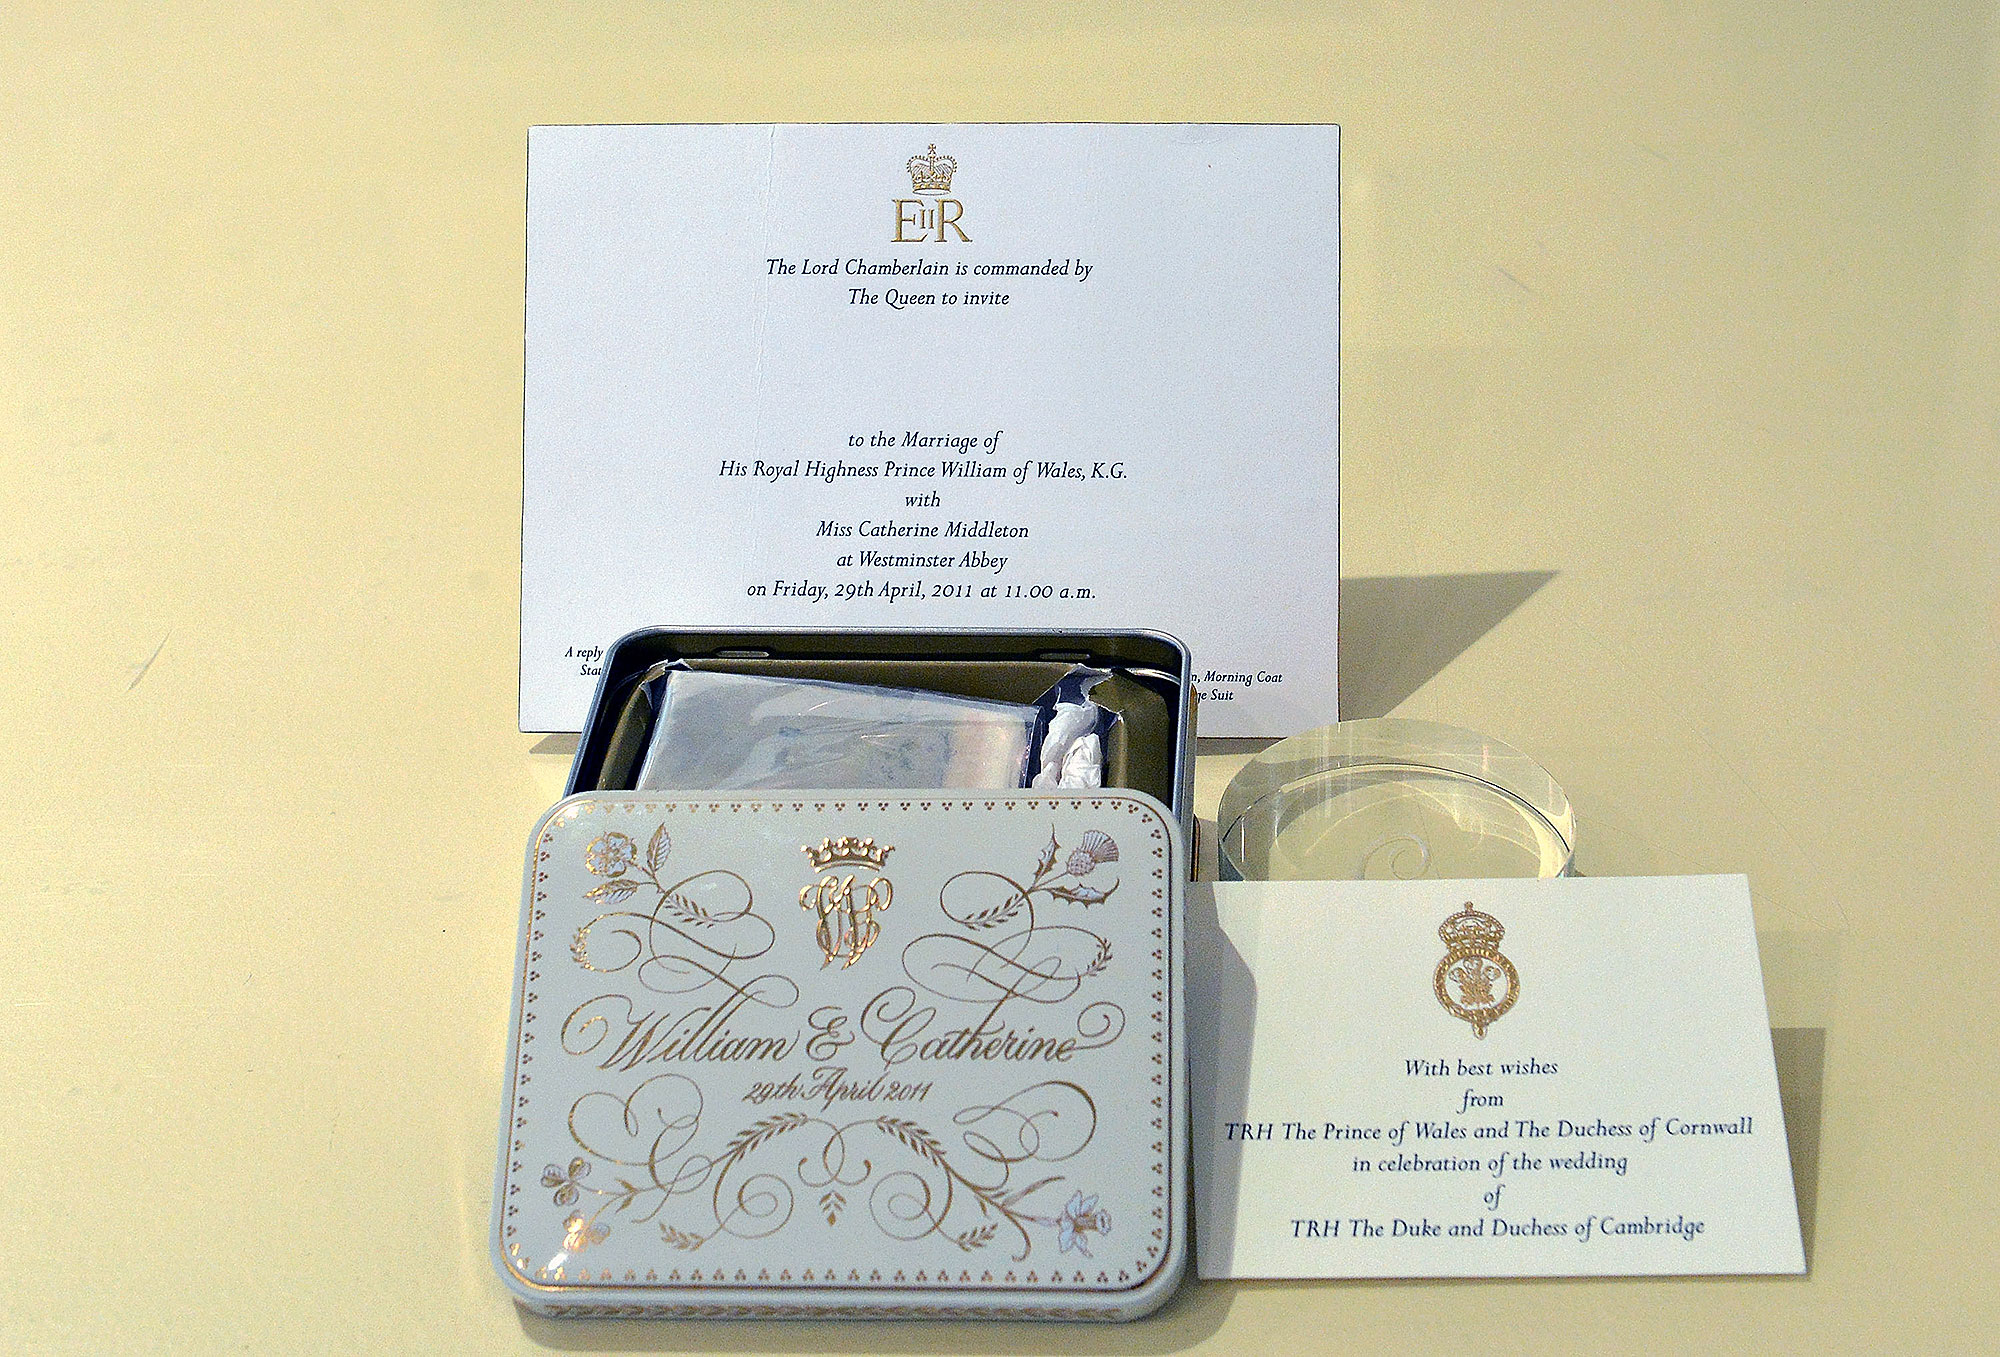 A boxed slice of royal wedding cake from the 2011 wedding of Prince William and Kate Middleton